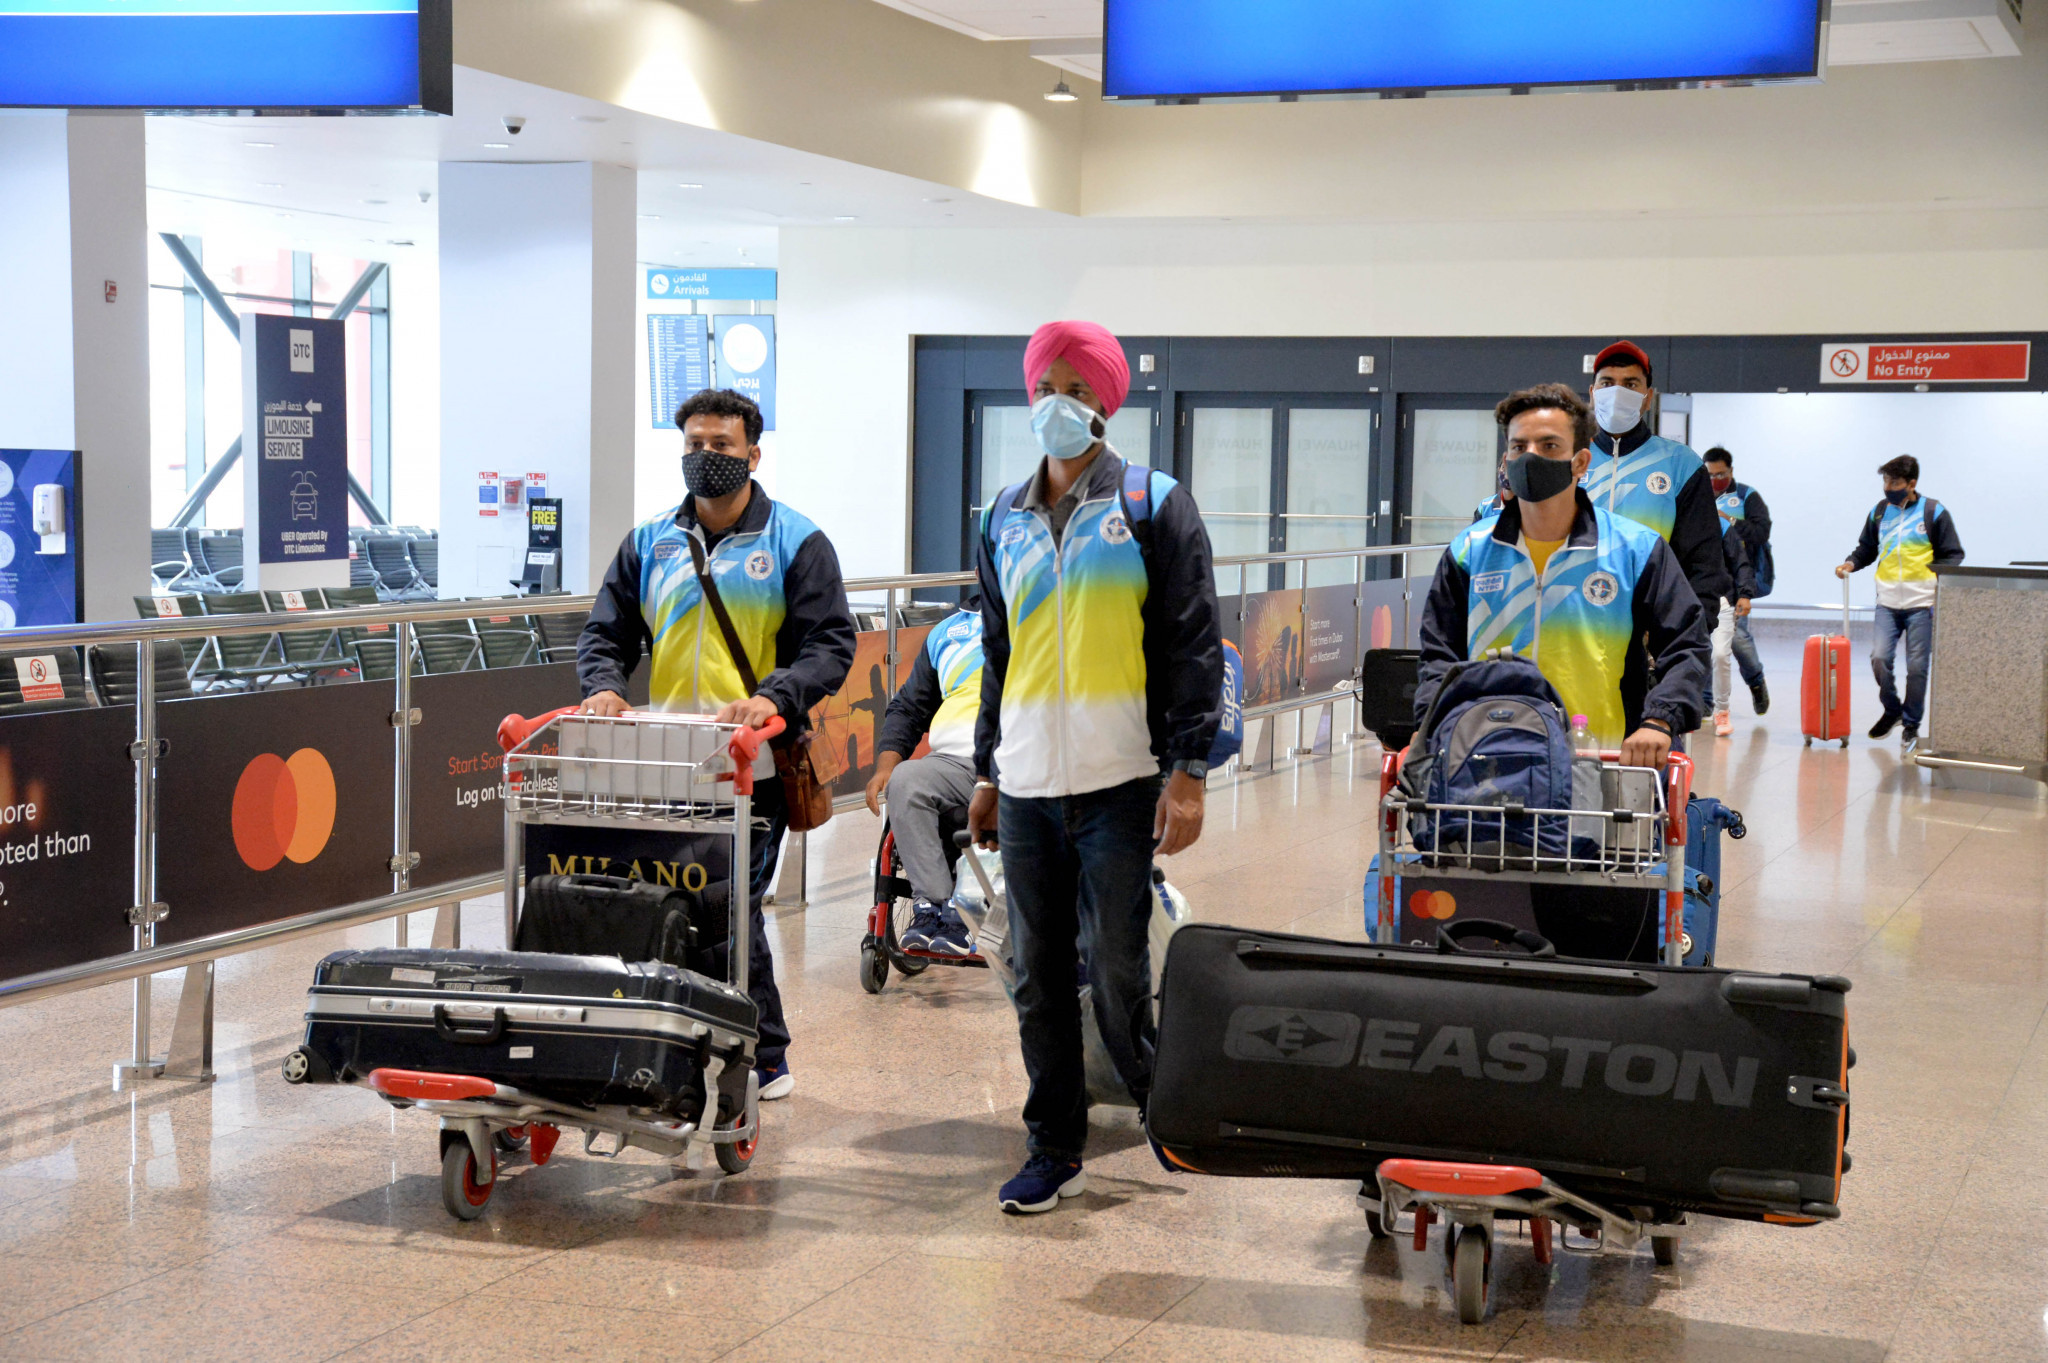 The Indian team, pictured arriving in Dubai, are among 11 countries competing in the Fazza Para Archery World Ranking Tournament ©Gaber Abedeen / Fazza LOC Media